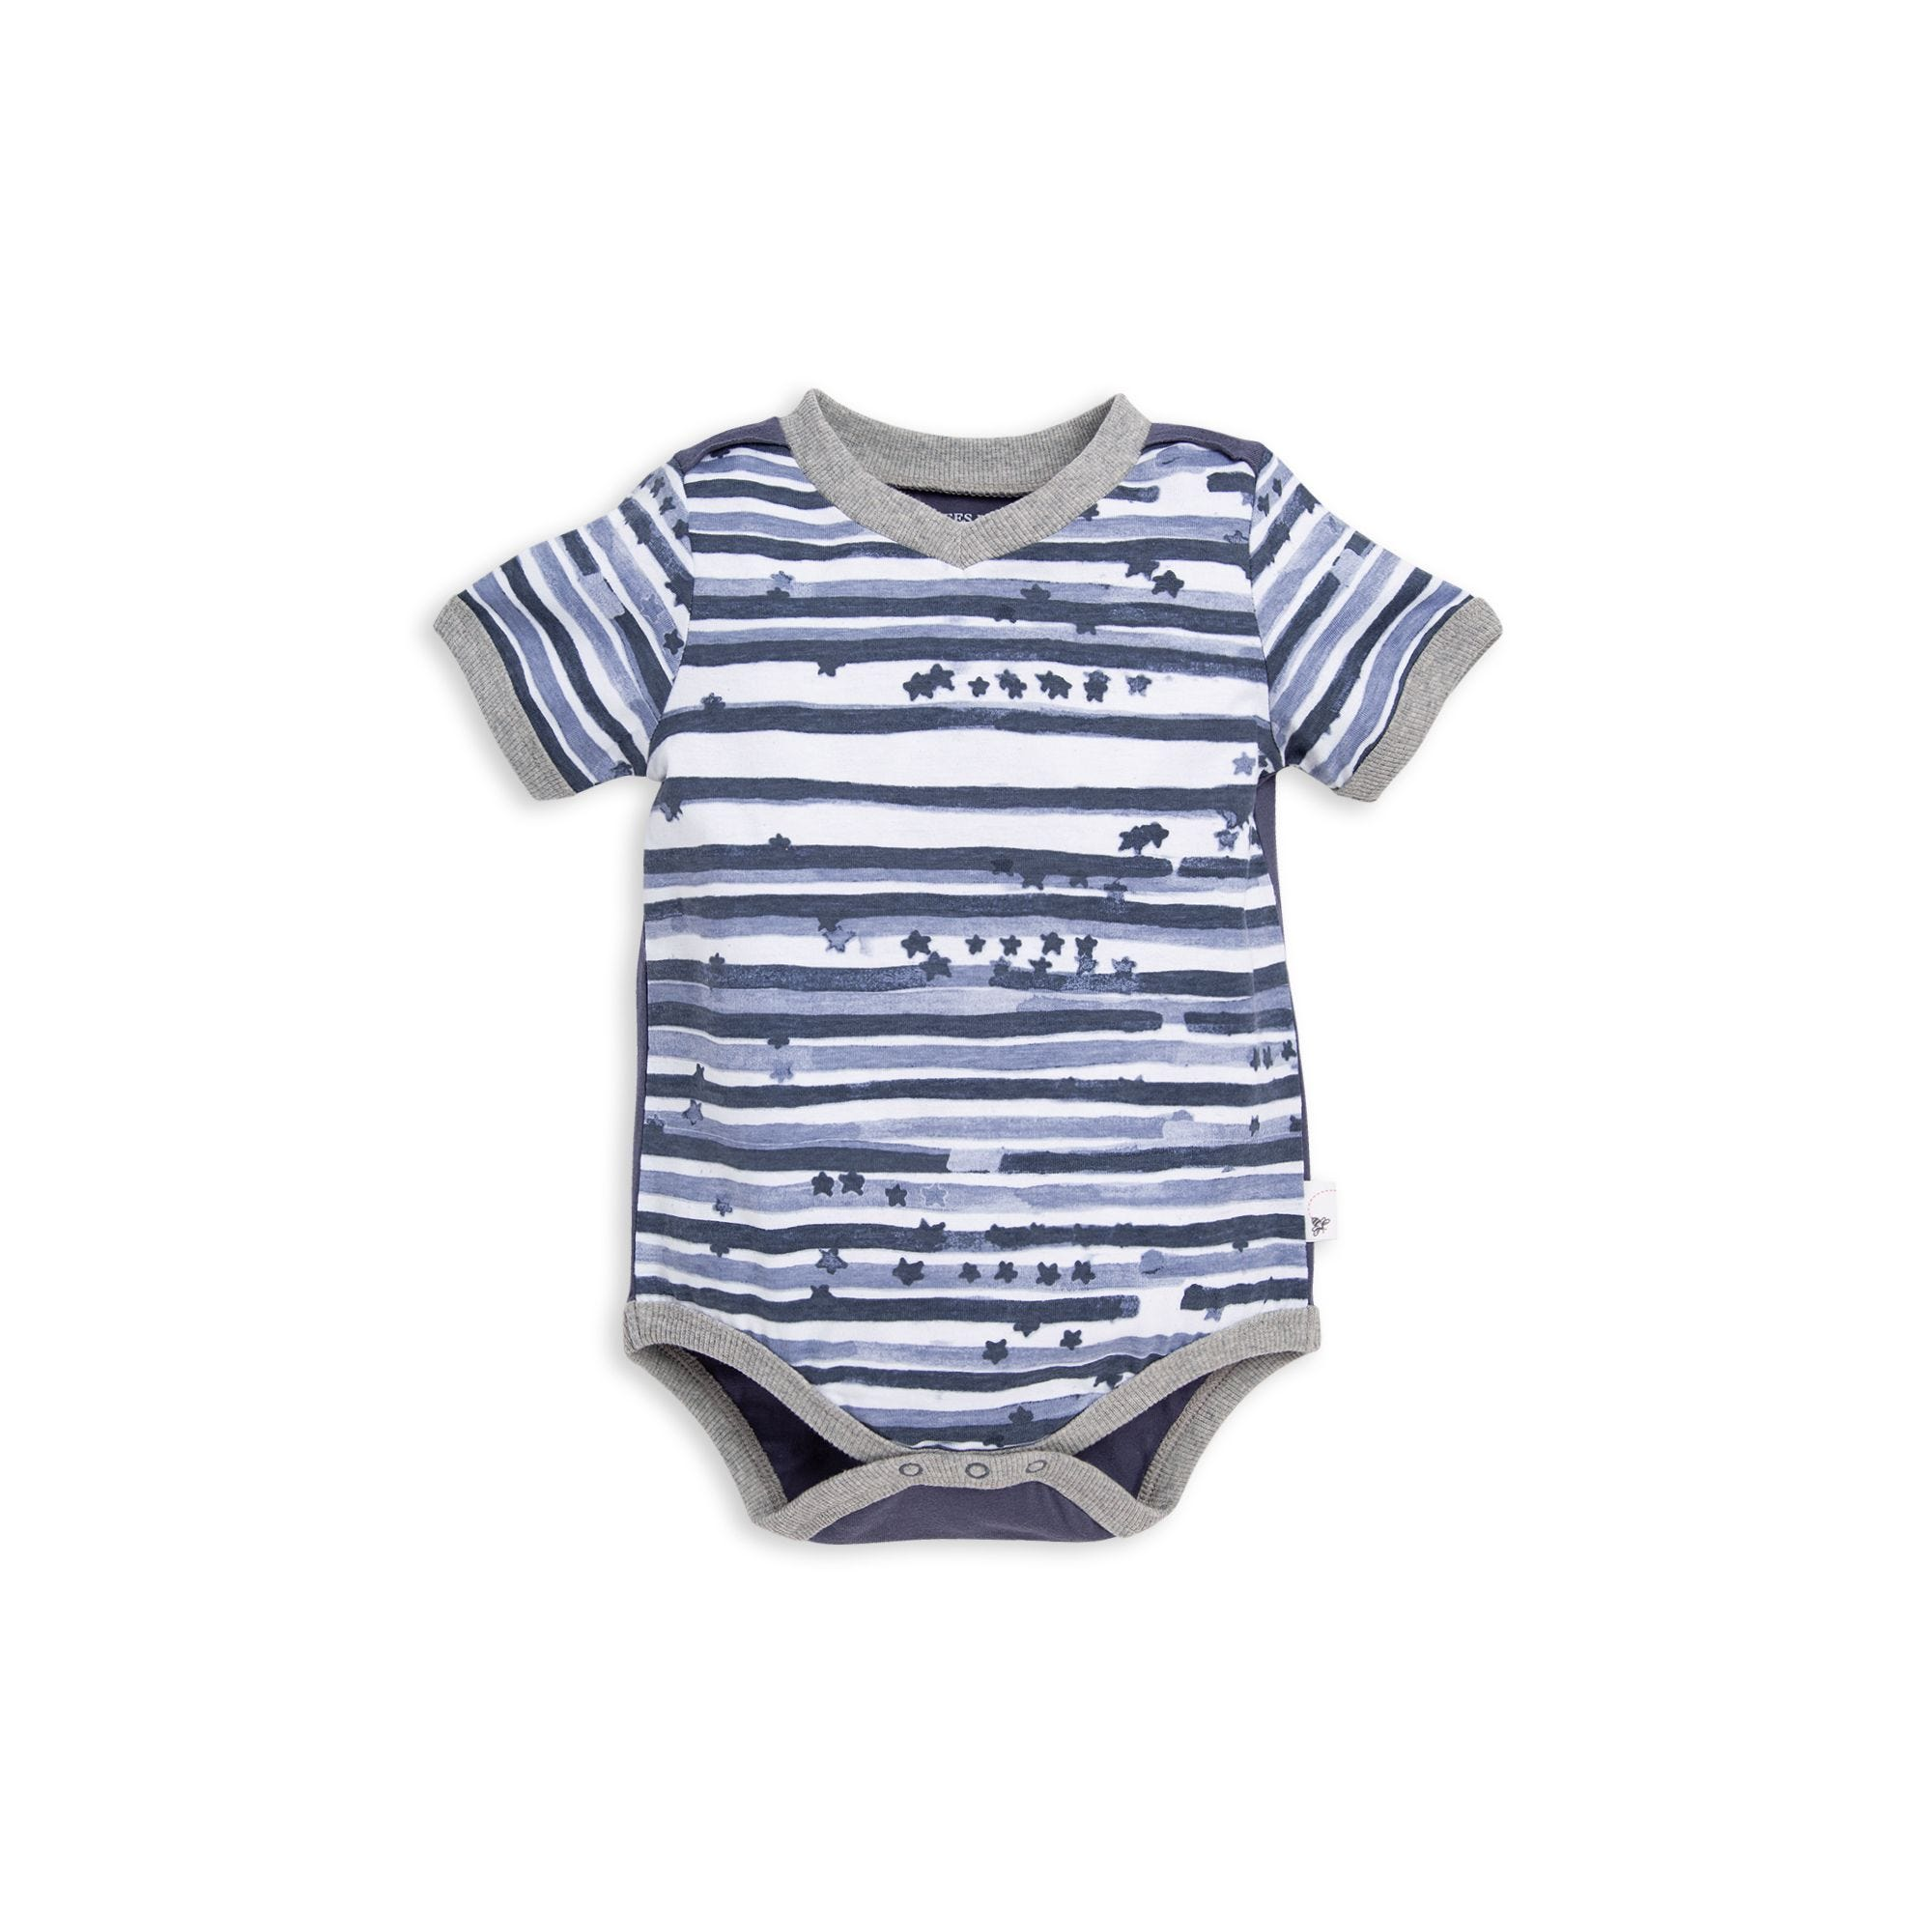 c38ce858f Starry Stripes Organic Baby Boy Bodysuit